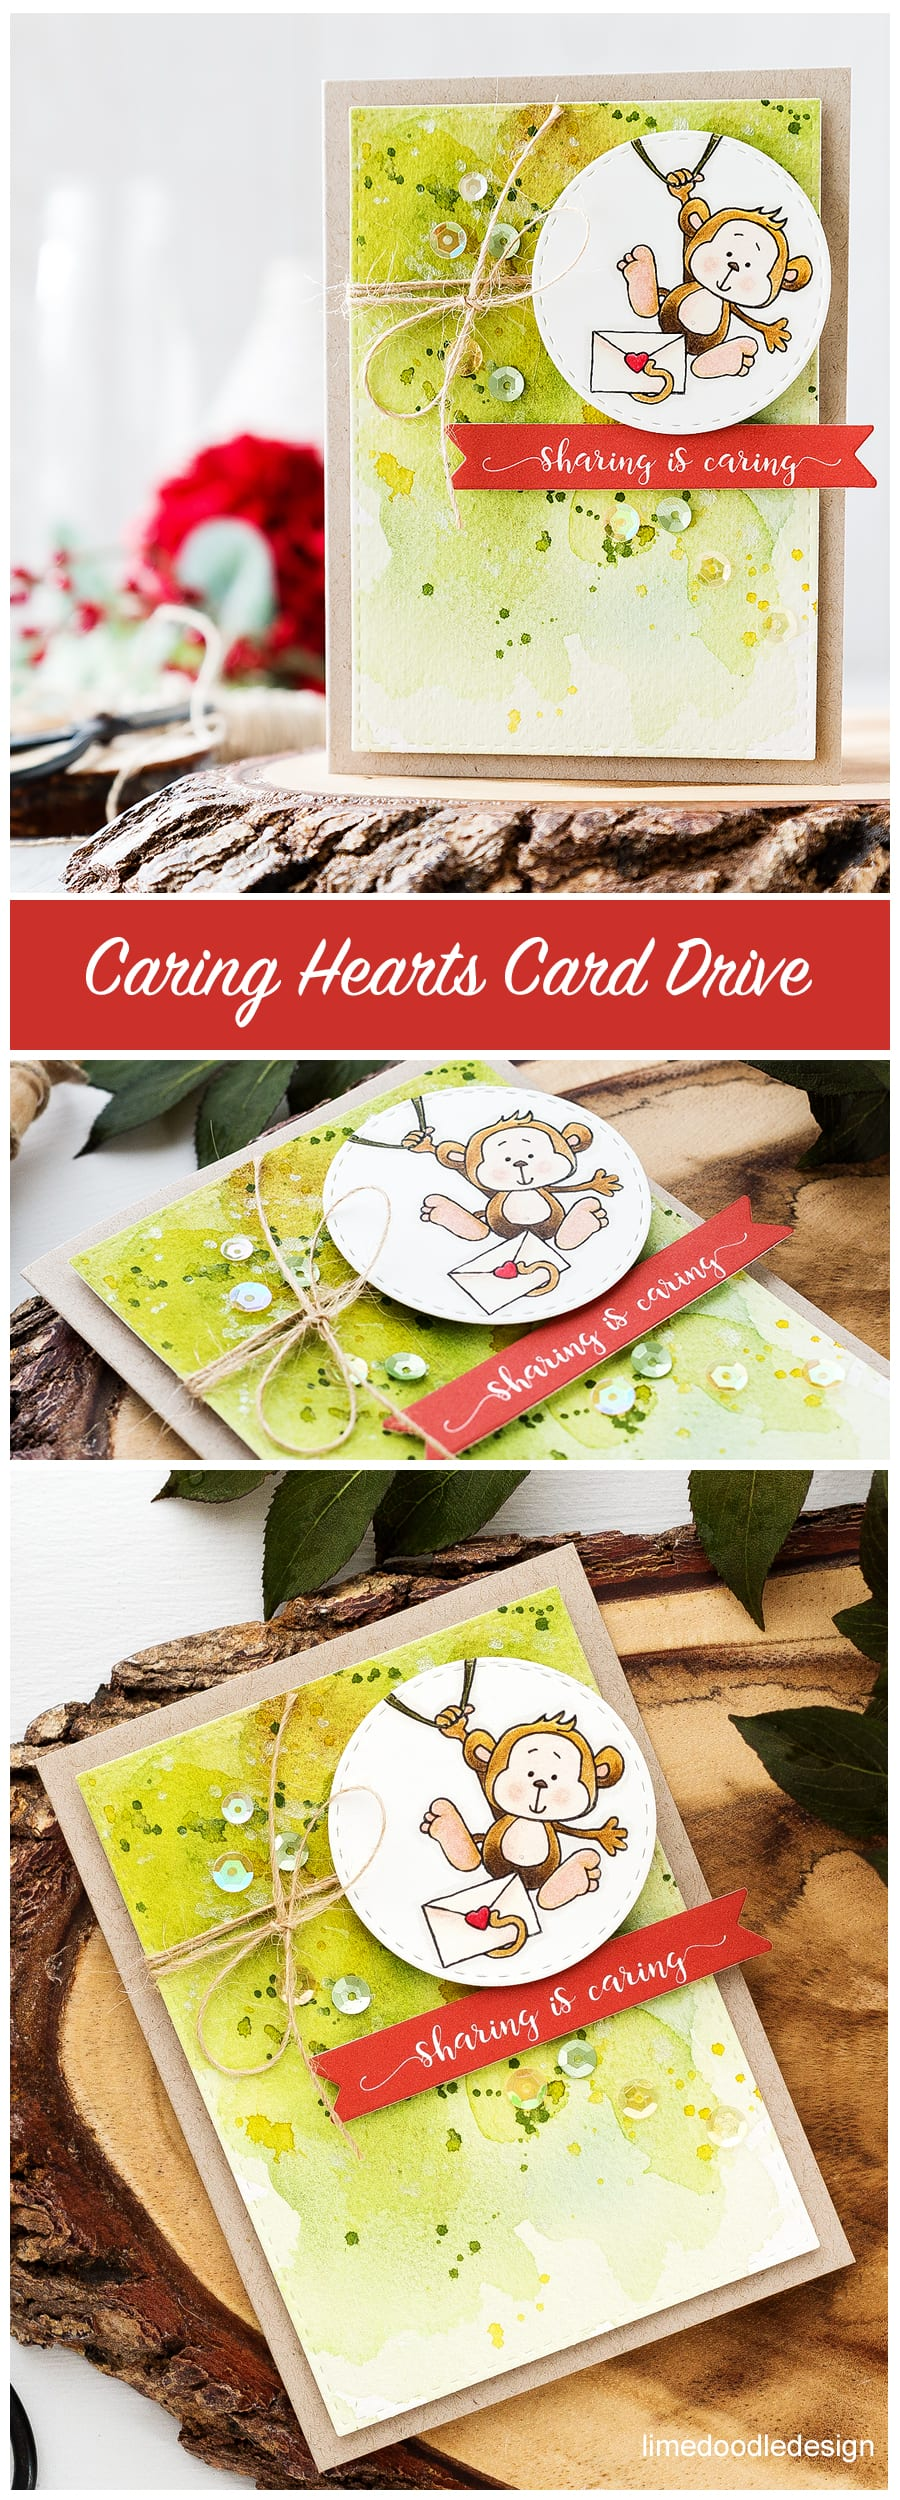 Caring Hearts Card Drive. Find out more by clicking on the following link: https://limedoodledesign.com/2016/09/caring-hearts-card-drive-hop/